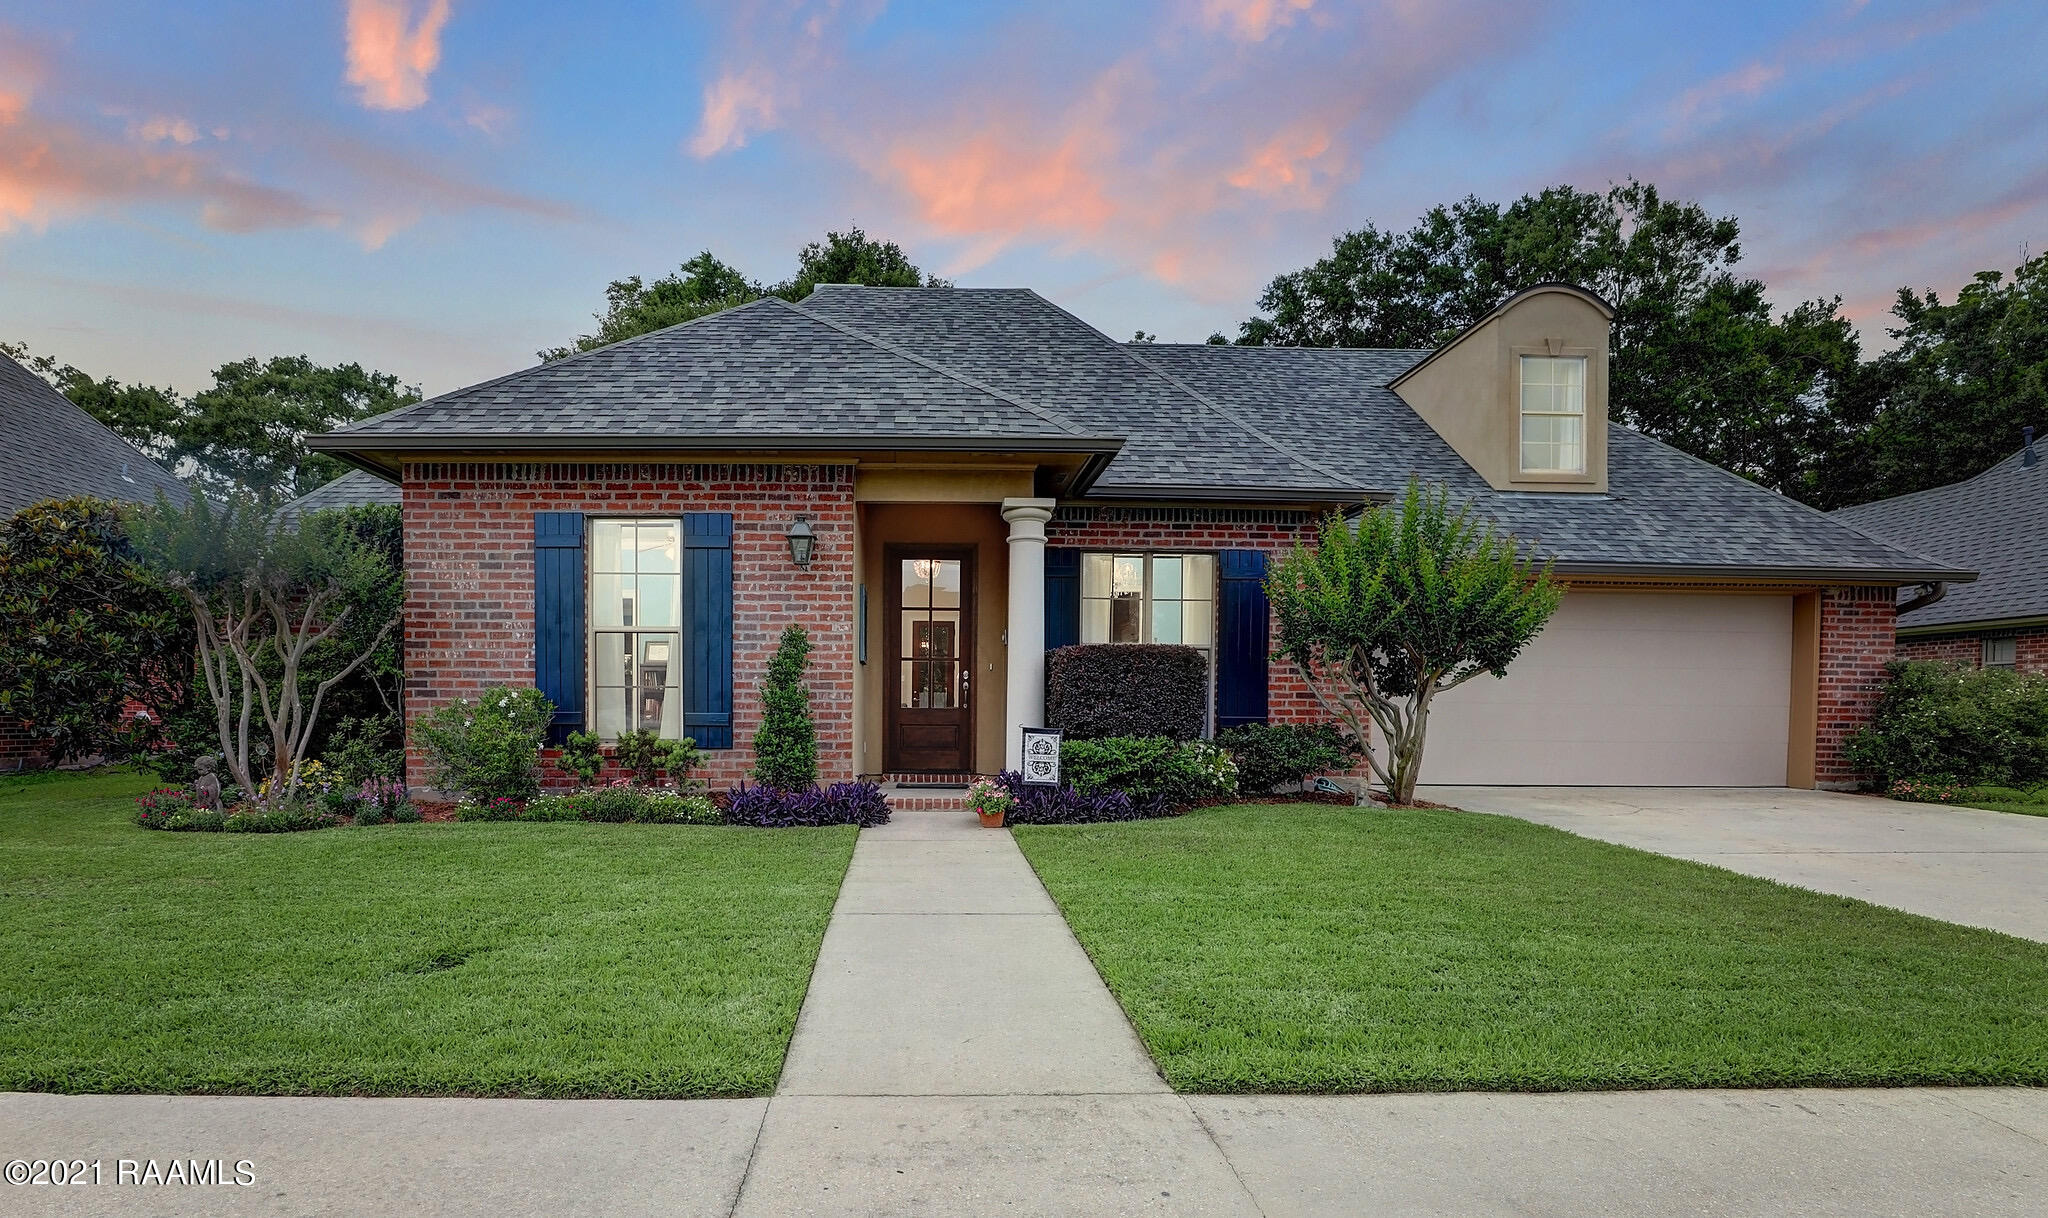 149 Willow Bend, Youngsville, LA 70592 Photo #36